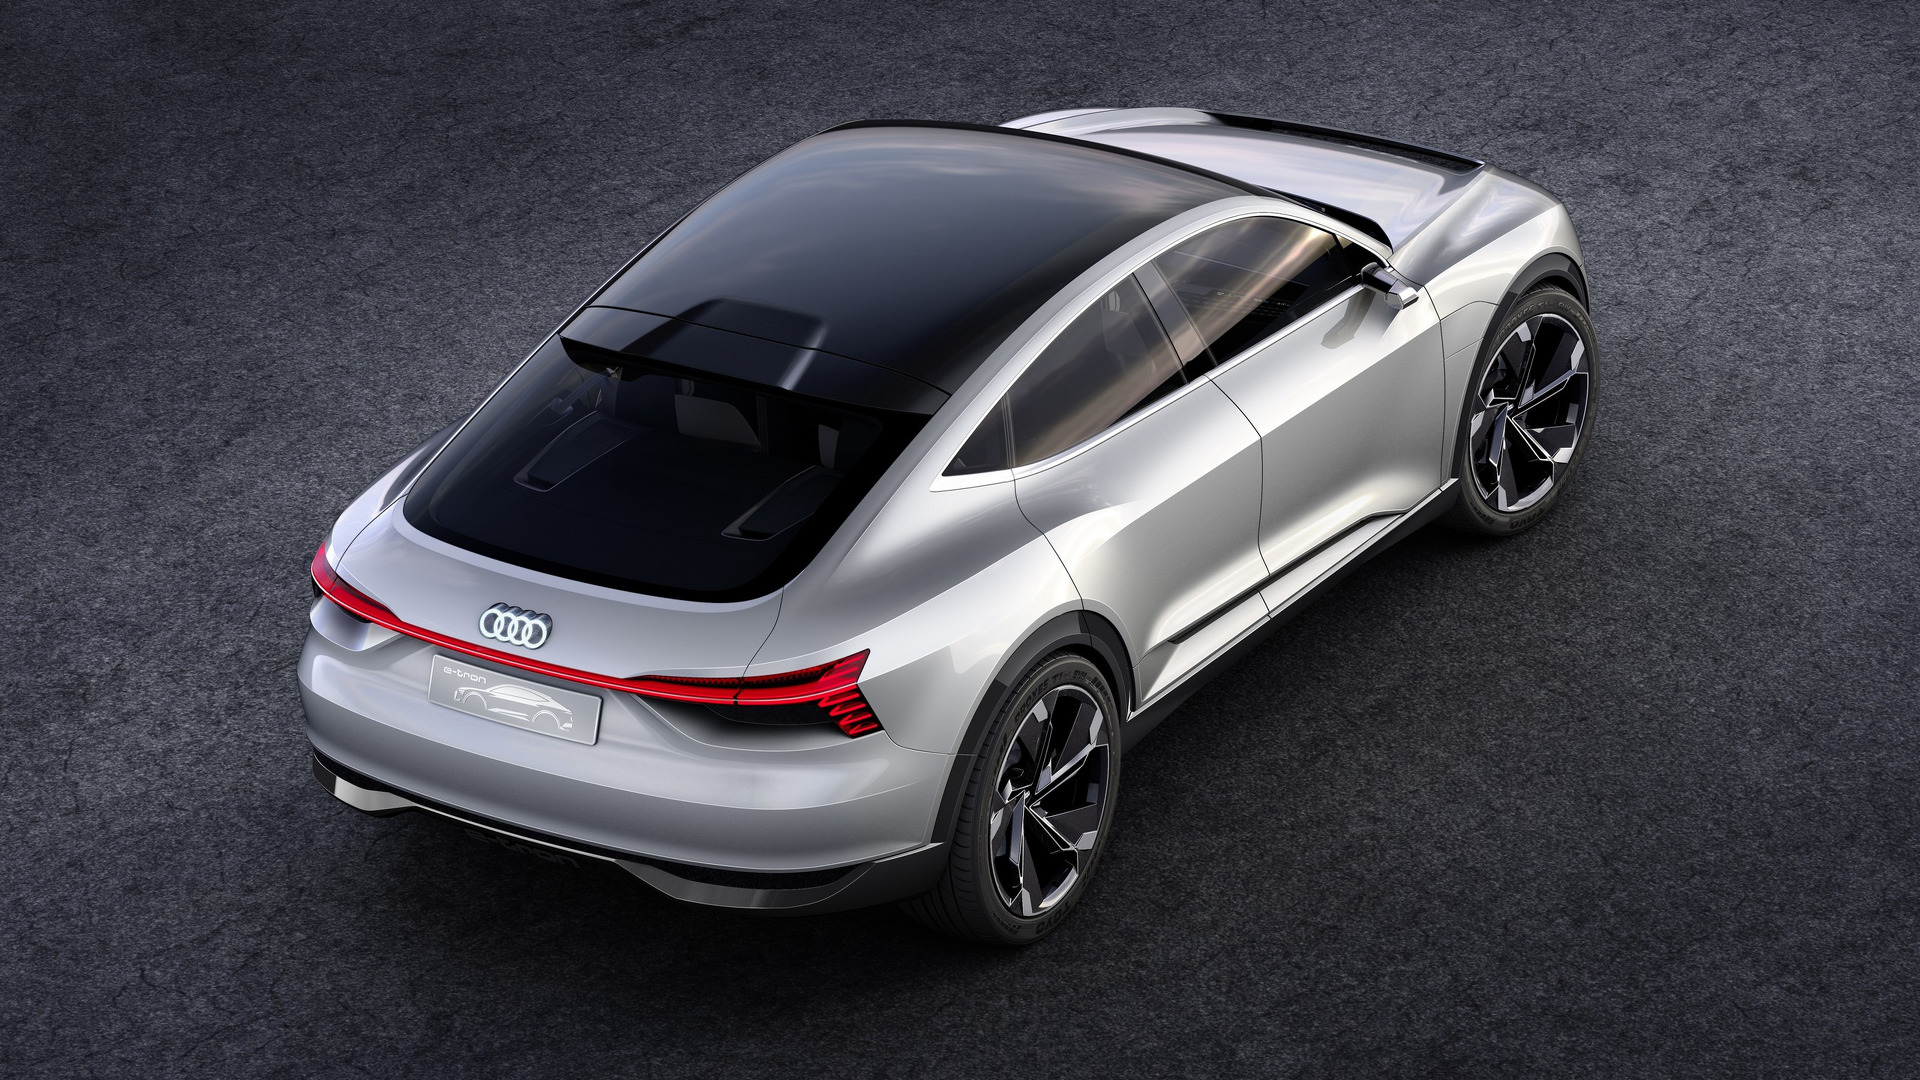 spy weeks automobiles in every new will photos news a model once audi introduce three